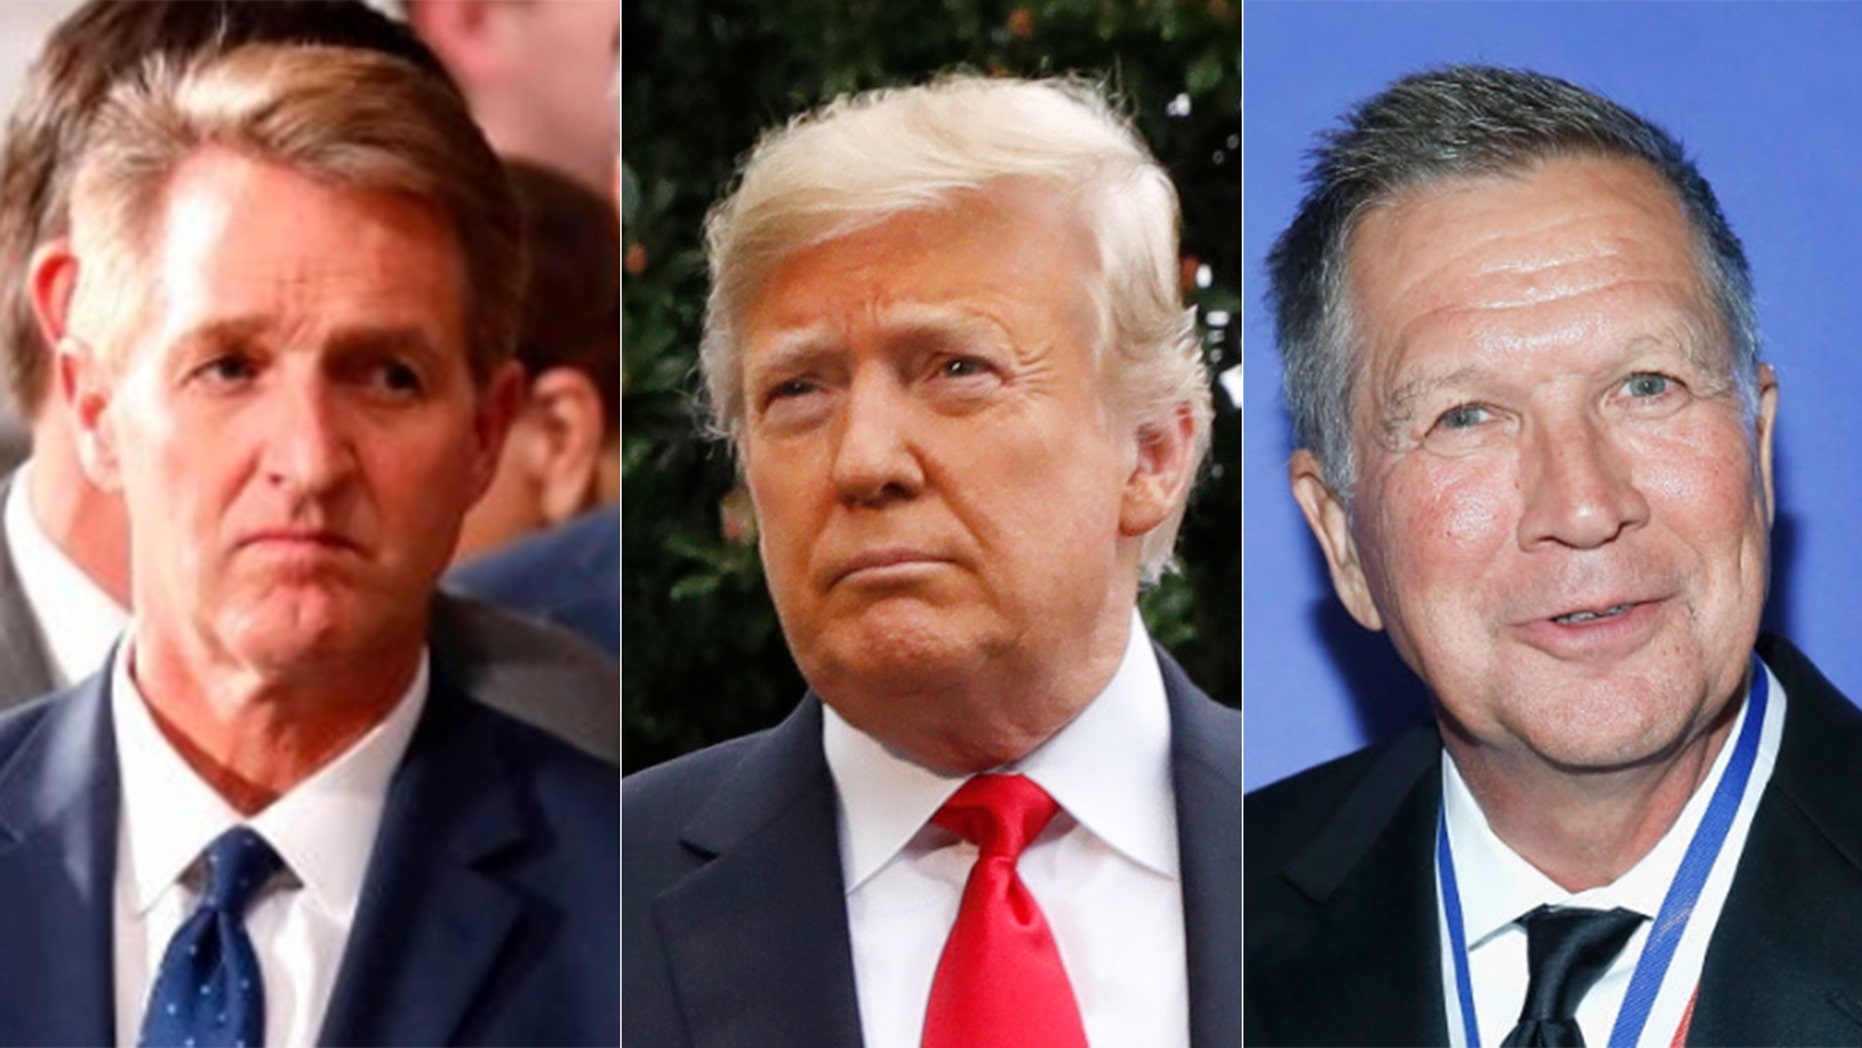 Jeff Flake, left, and John Kasich, right, have both made visits this year to New Hampshire, amid speculation about a possible Trump primary challenge.